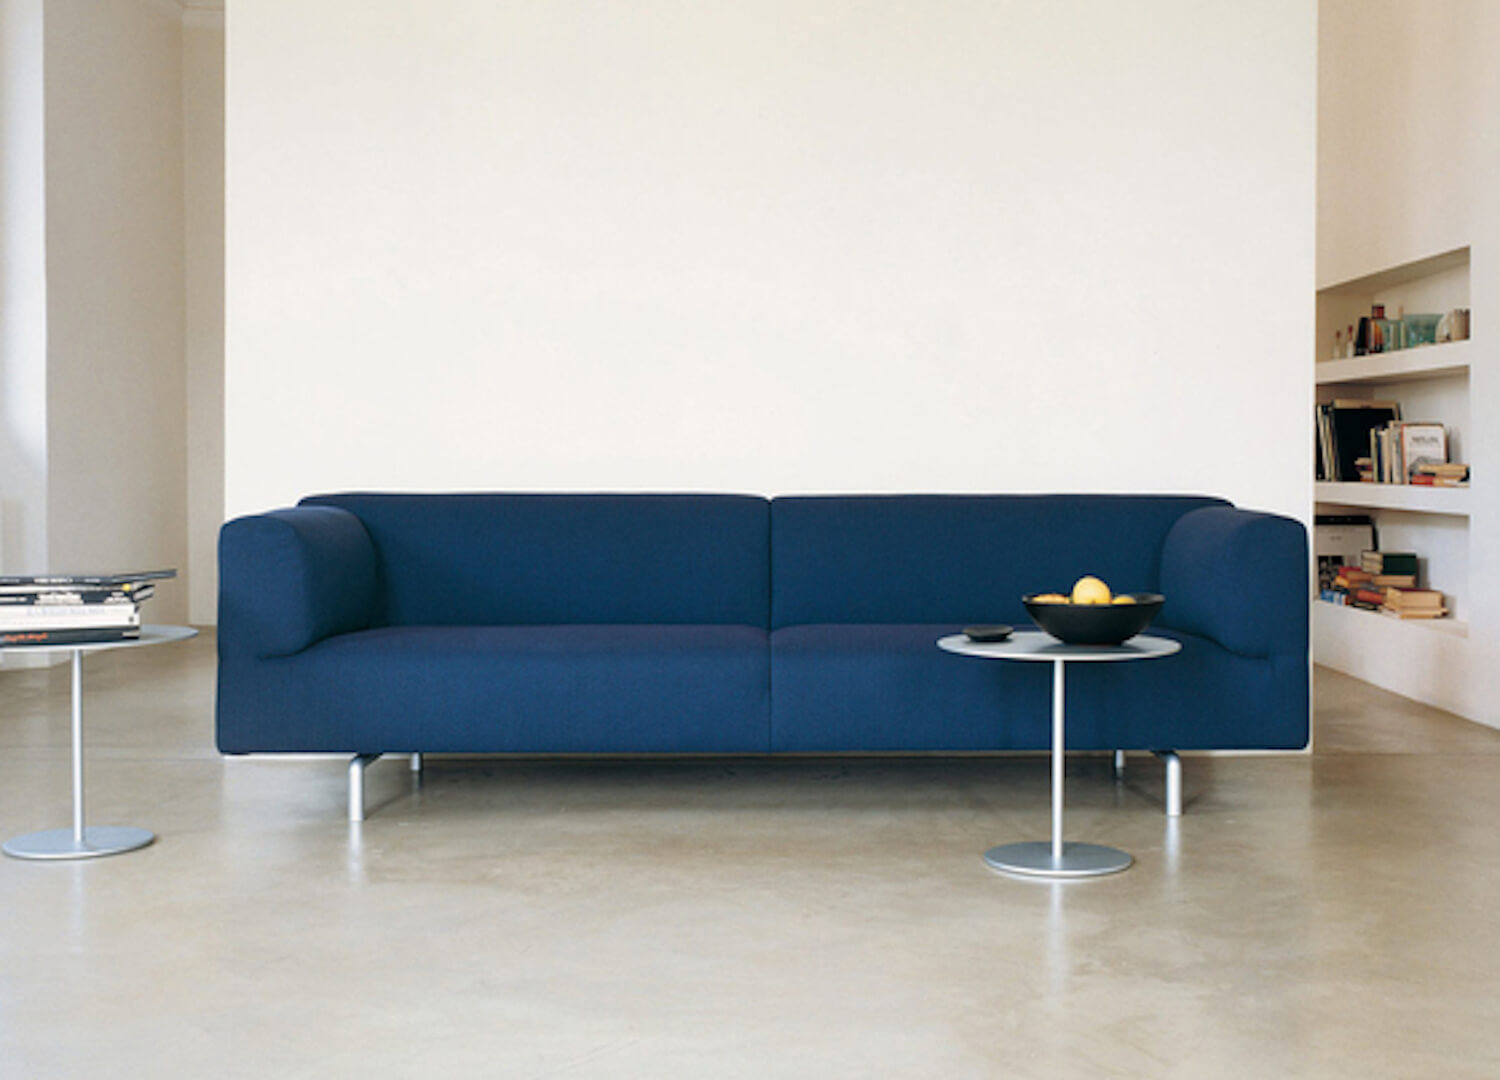 est living space cassina 250 met sofa piero lissoni 1